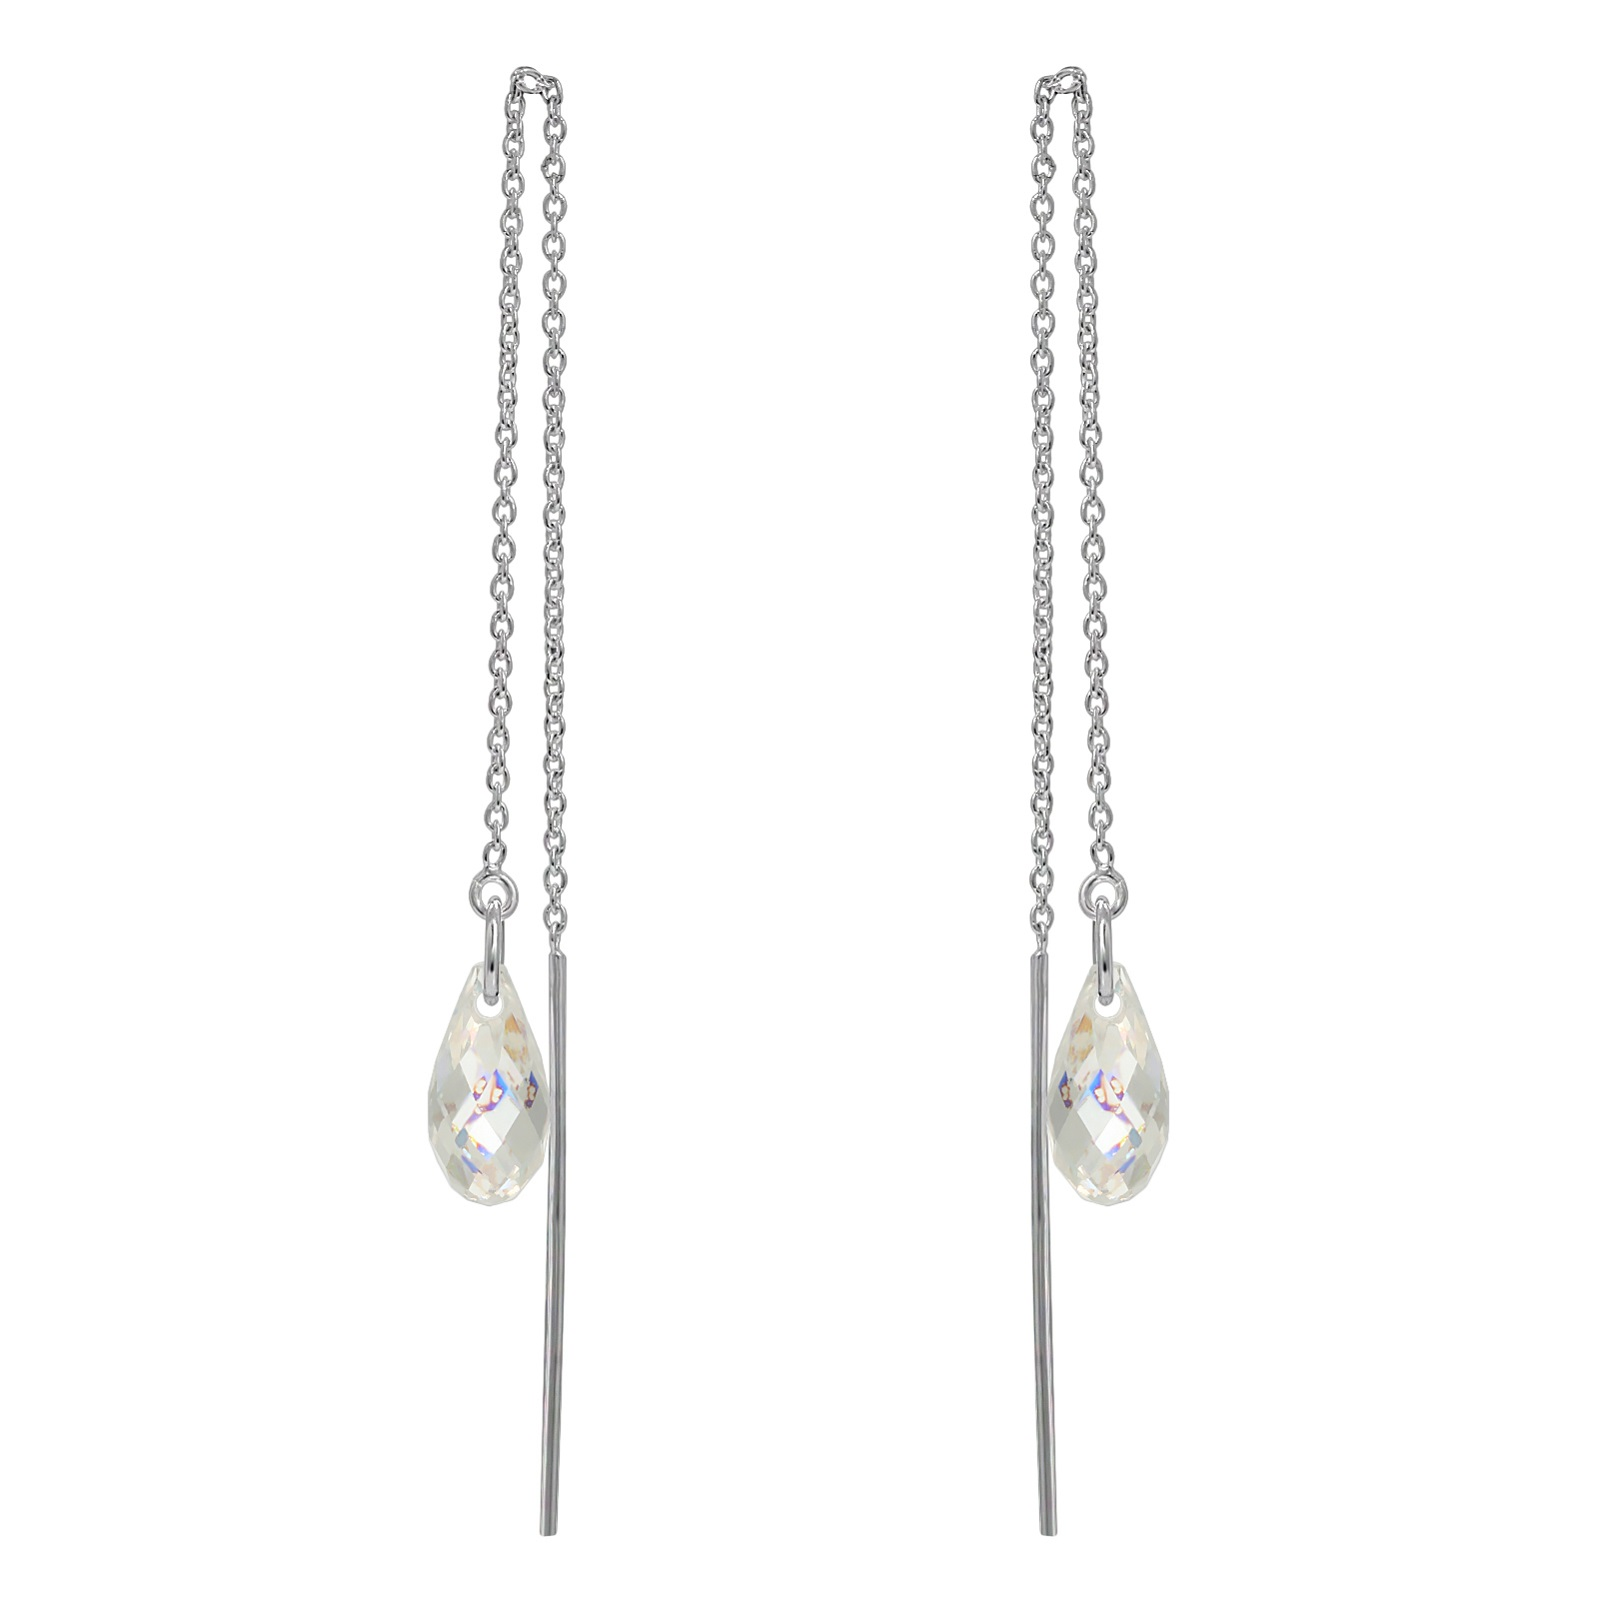 Crystal Briolette Threader Earrings - Swarovski Crystals Elements White Patina